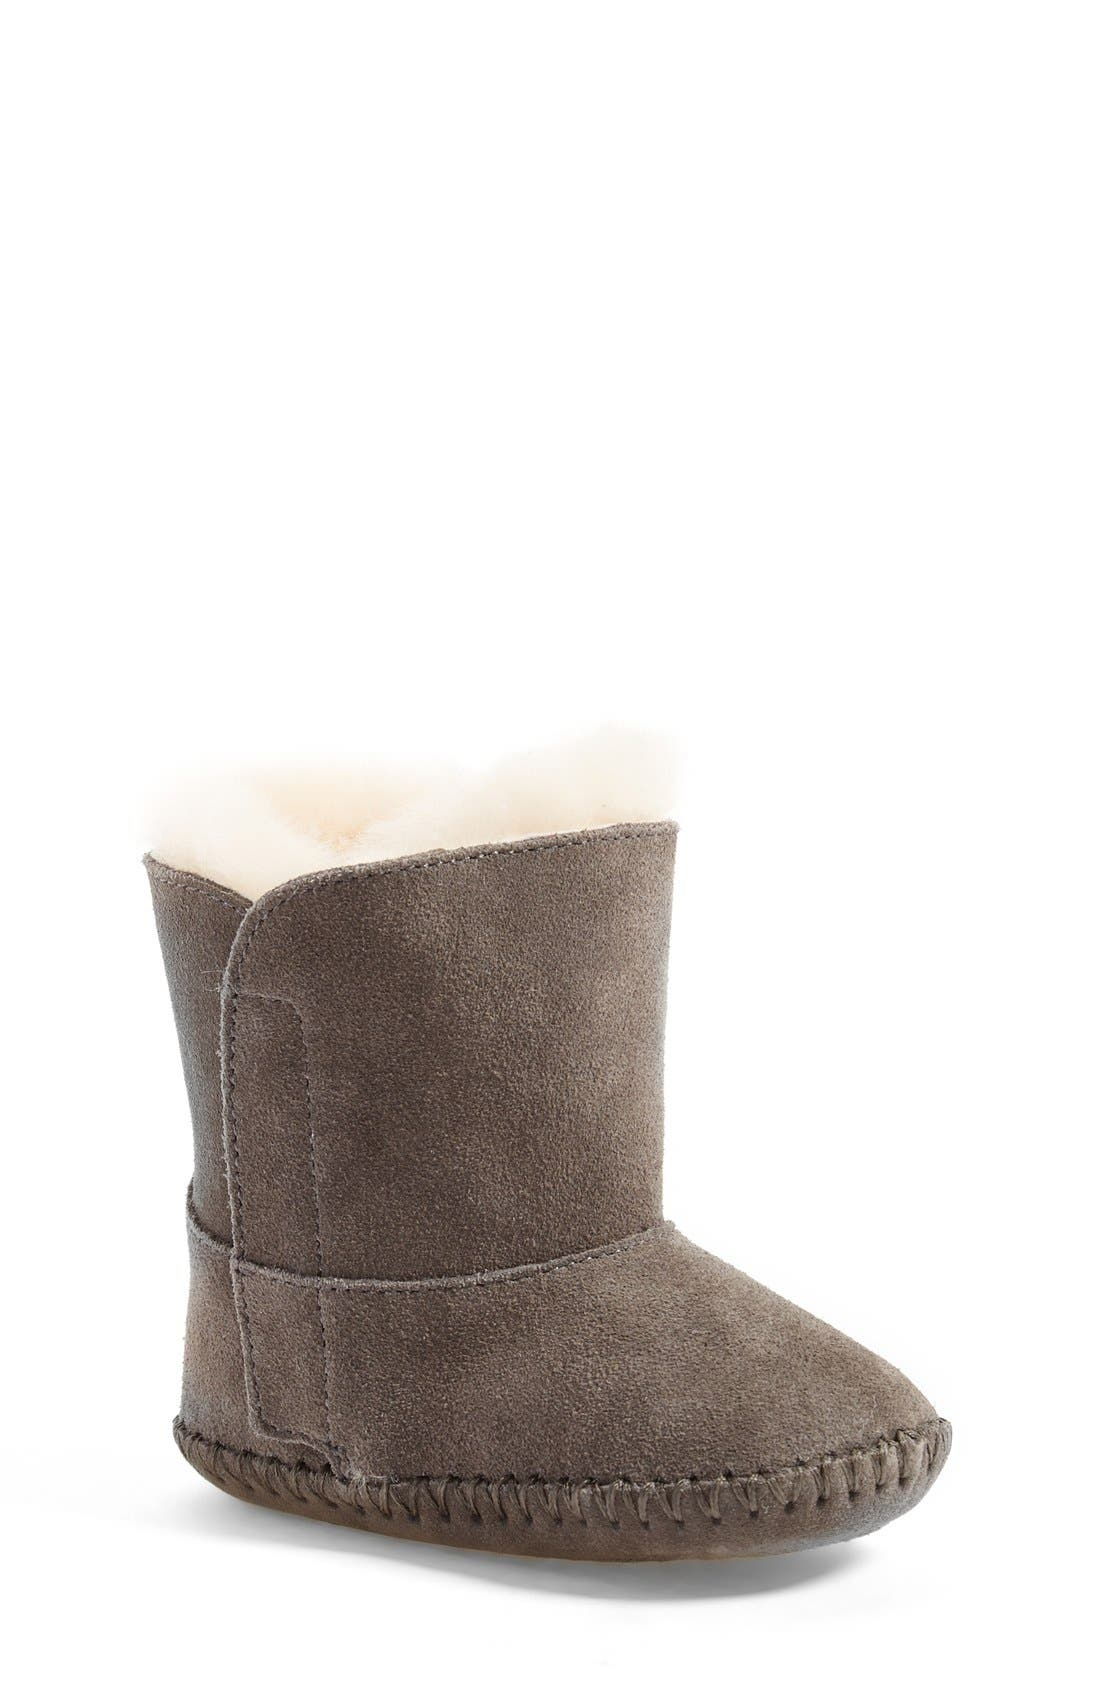 Alternate Image 1 Selected - UGG® Caden Boot (Baby & Walker) (Nordstrom Exclusive)